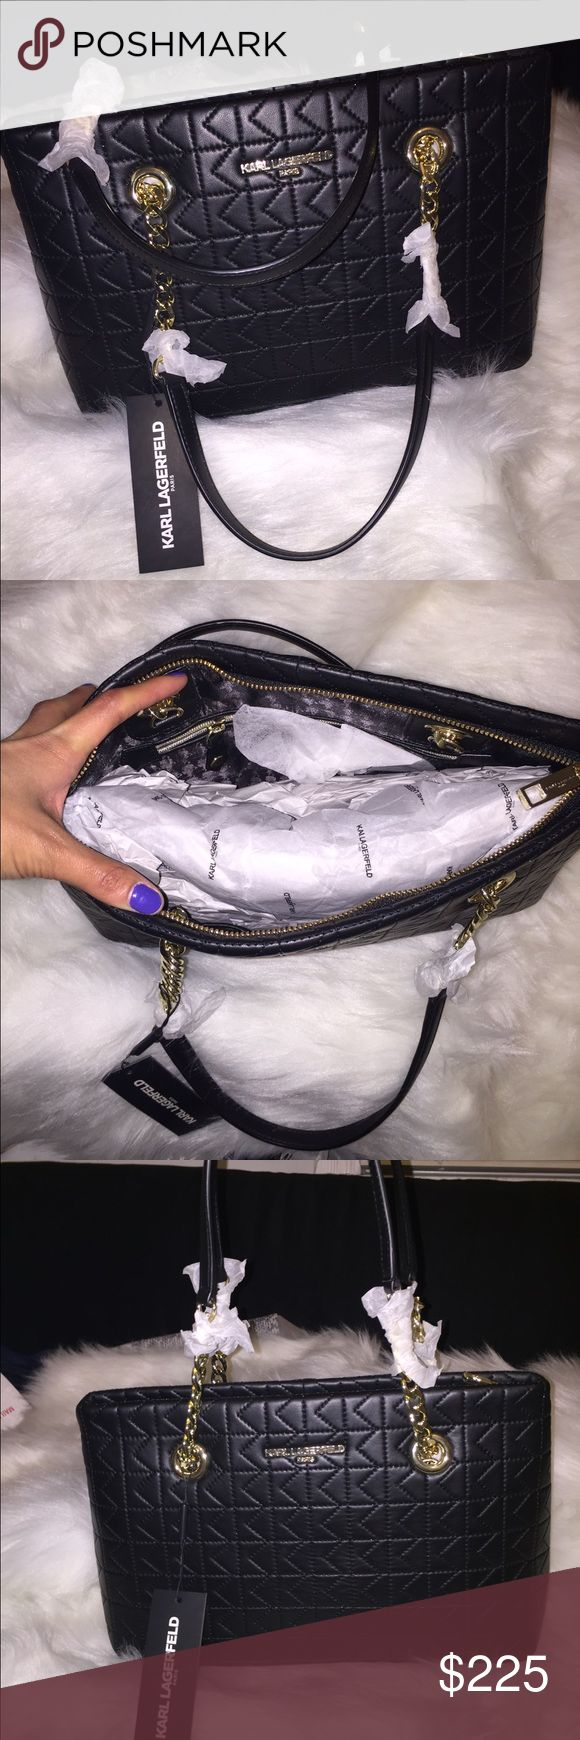 """💋NWT! Karl Lagerfeld"""" BlK Quilted Lamb Bag! 💋NWT! Karl Lagerfeld"""" BlK Quilted Lamb Bag! Gorgeous Bag! 🚫No Trades! Brand New! Karl Lagerfeld Bags Shoulder Bags"""